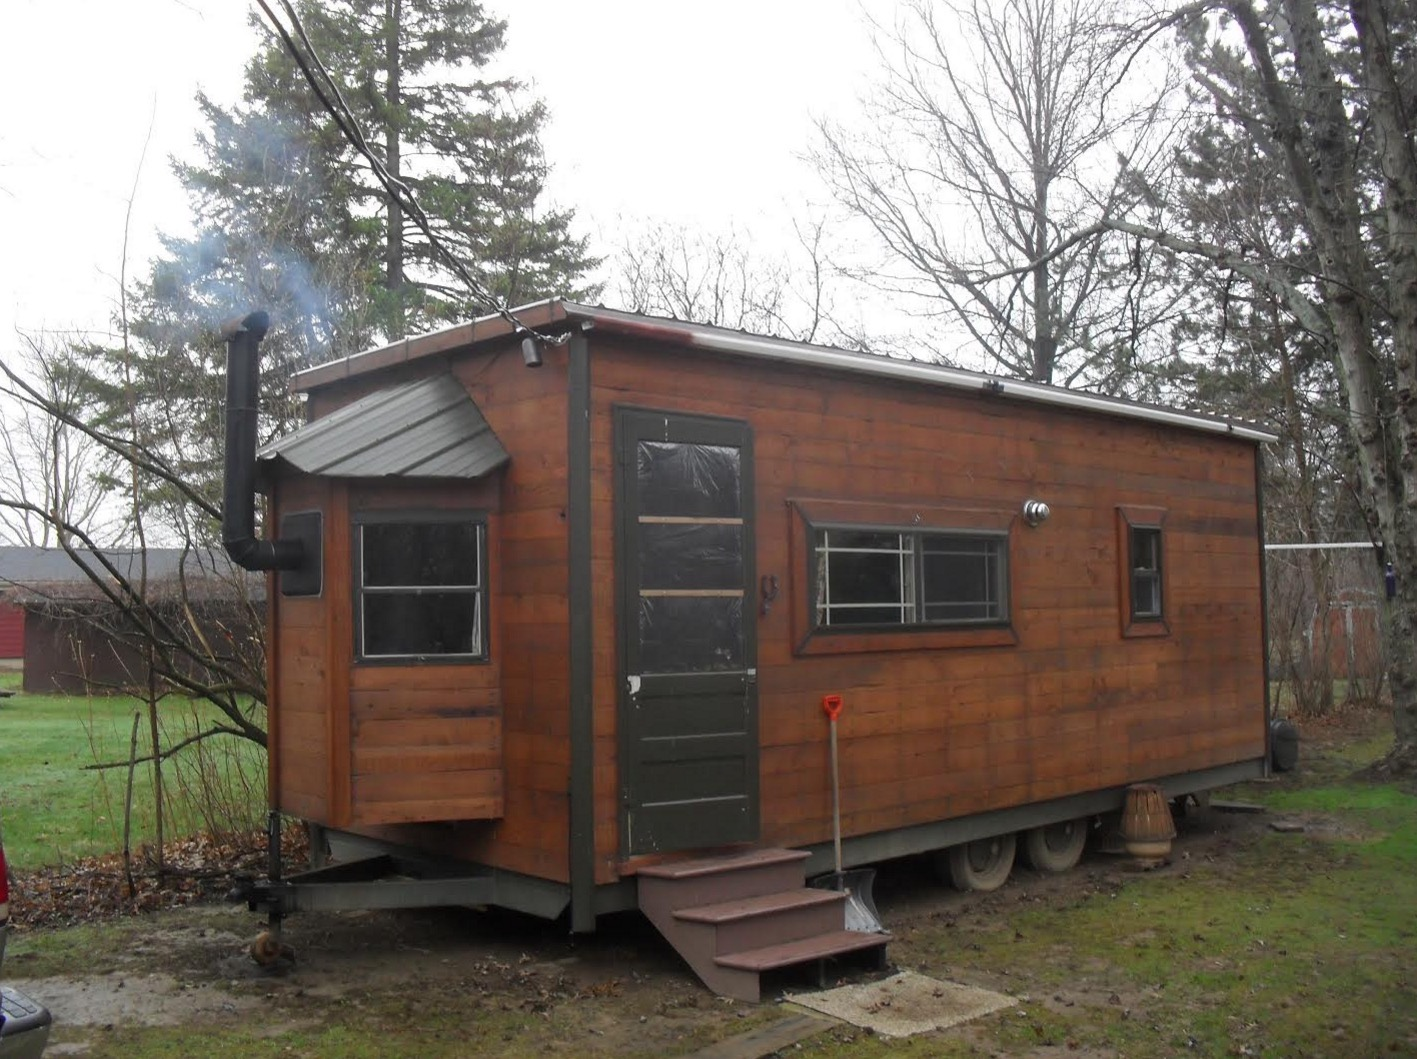 Kerry 39 s 12k tiny house on wheels for sale Tiny little houses on wheels